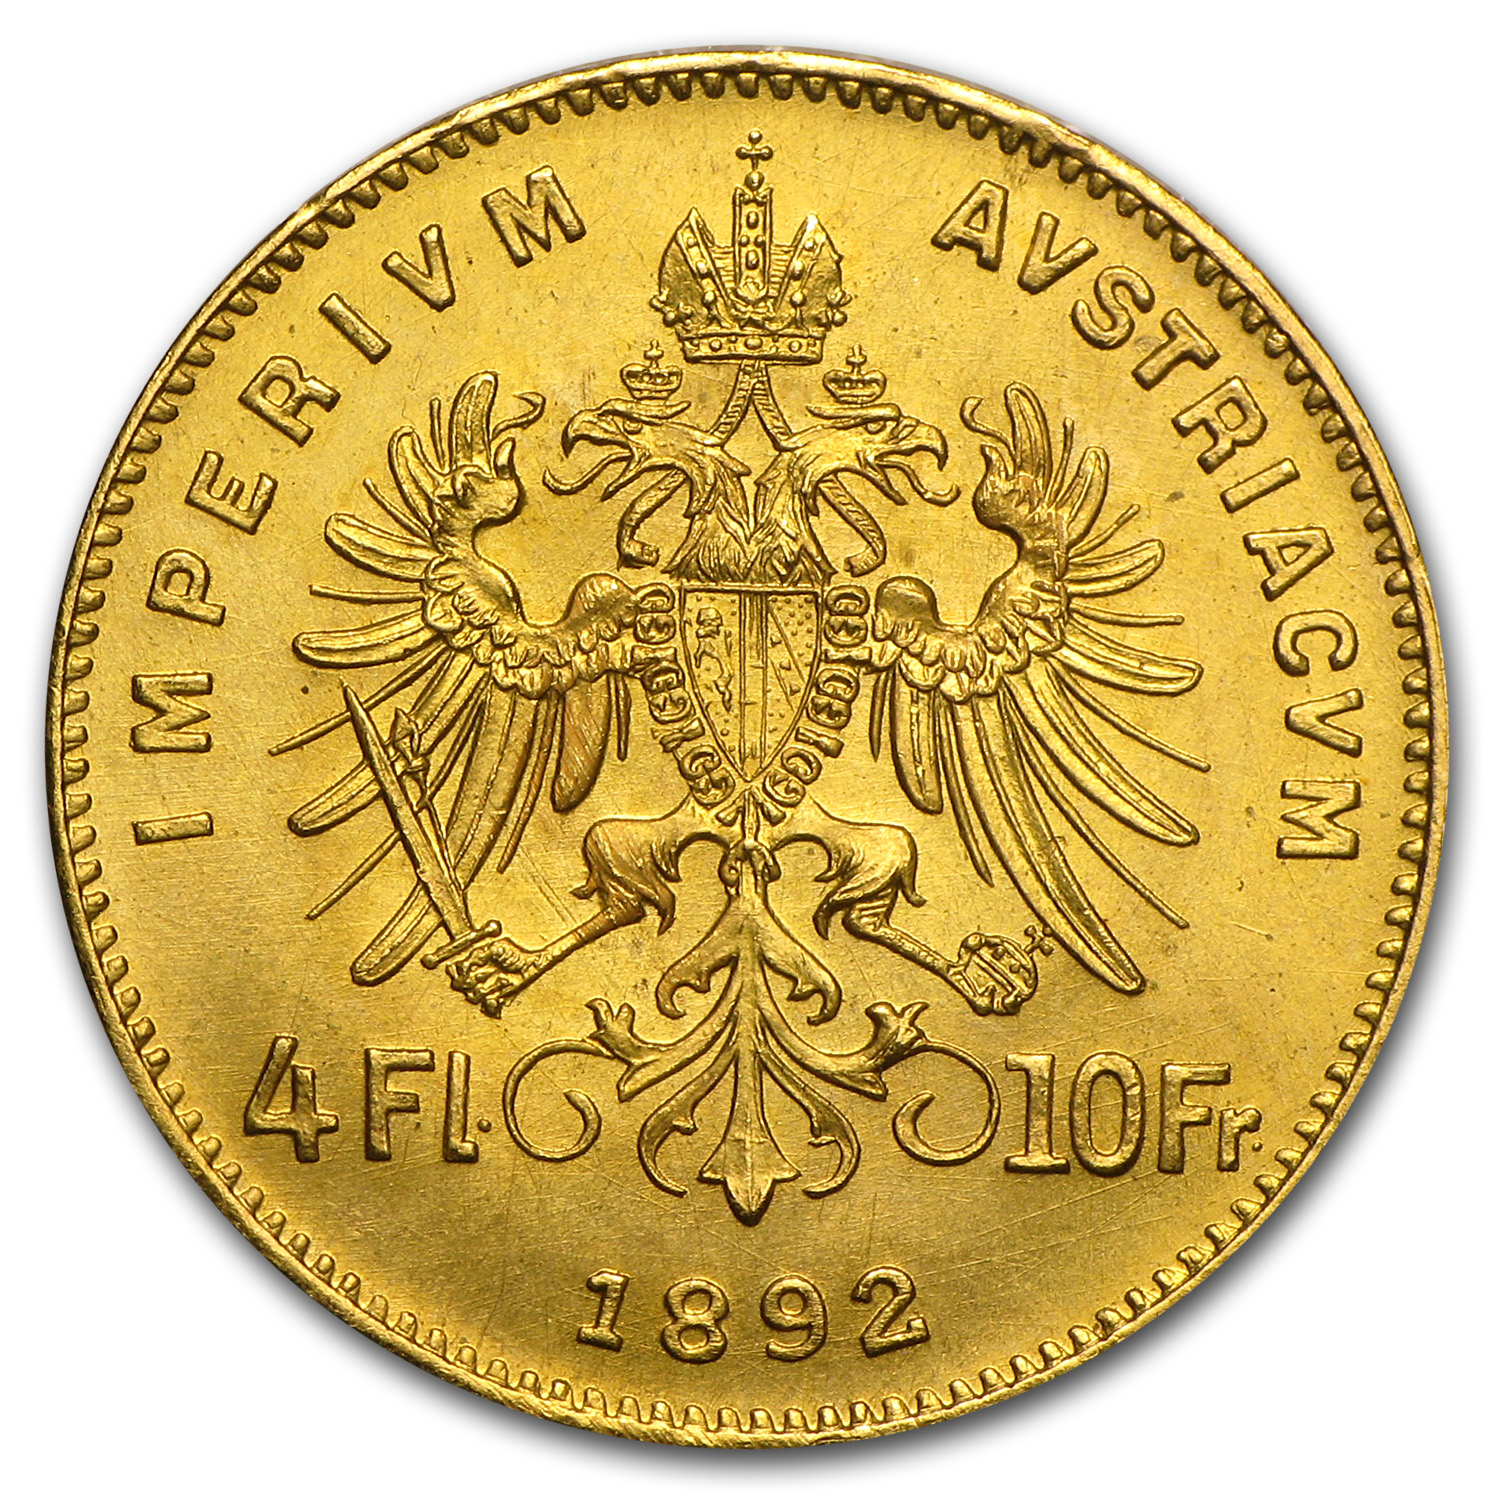 Austria 1892 4 Florin/10 Francs Gold Coin AU or Better